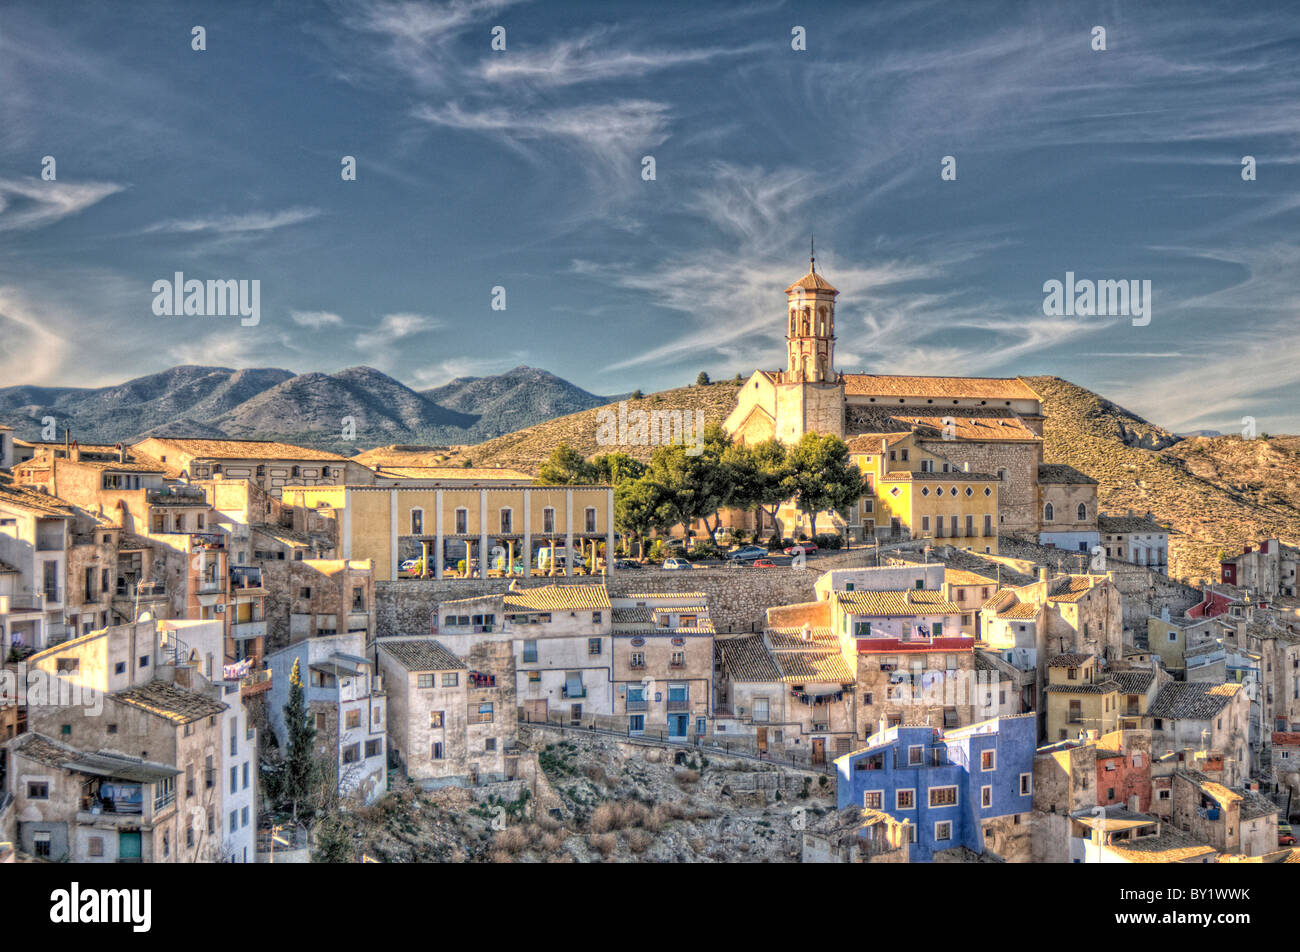 View over the Murcian town of Cehegín showing the Church of Santa María Magdalena and old quarter. Spain - Stock Image